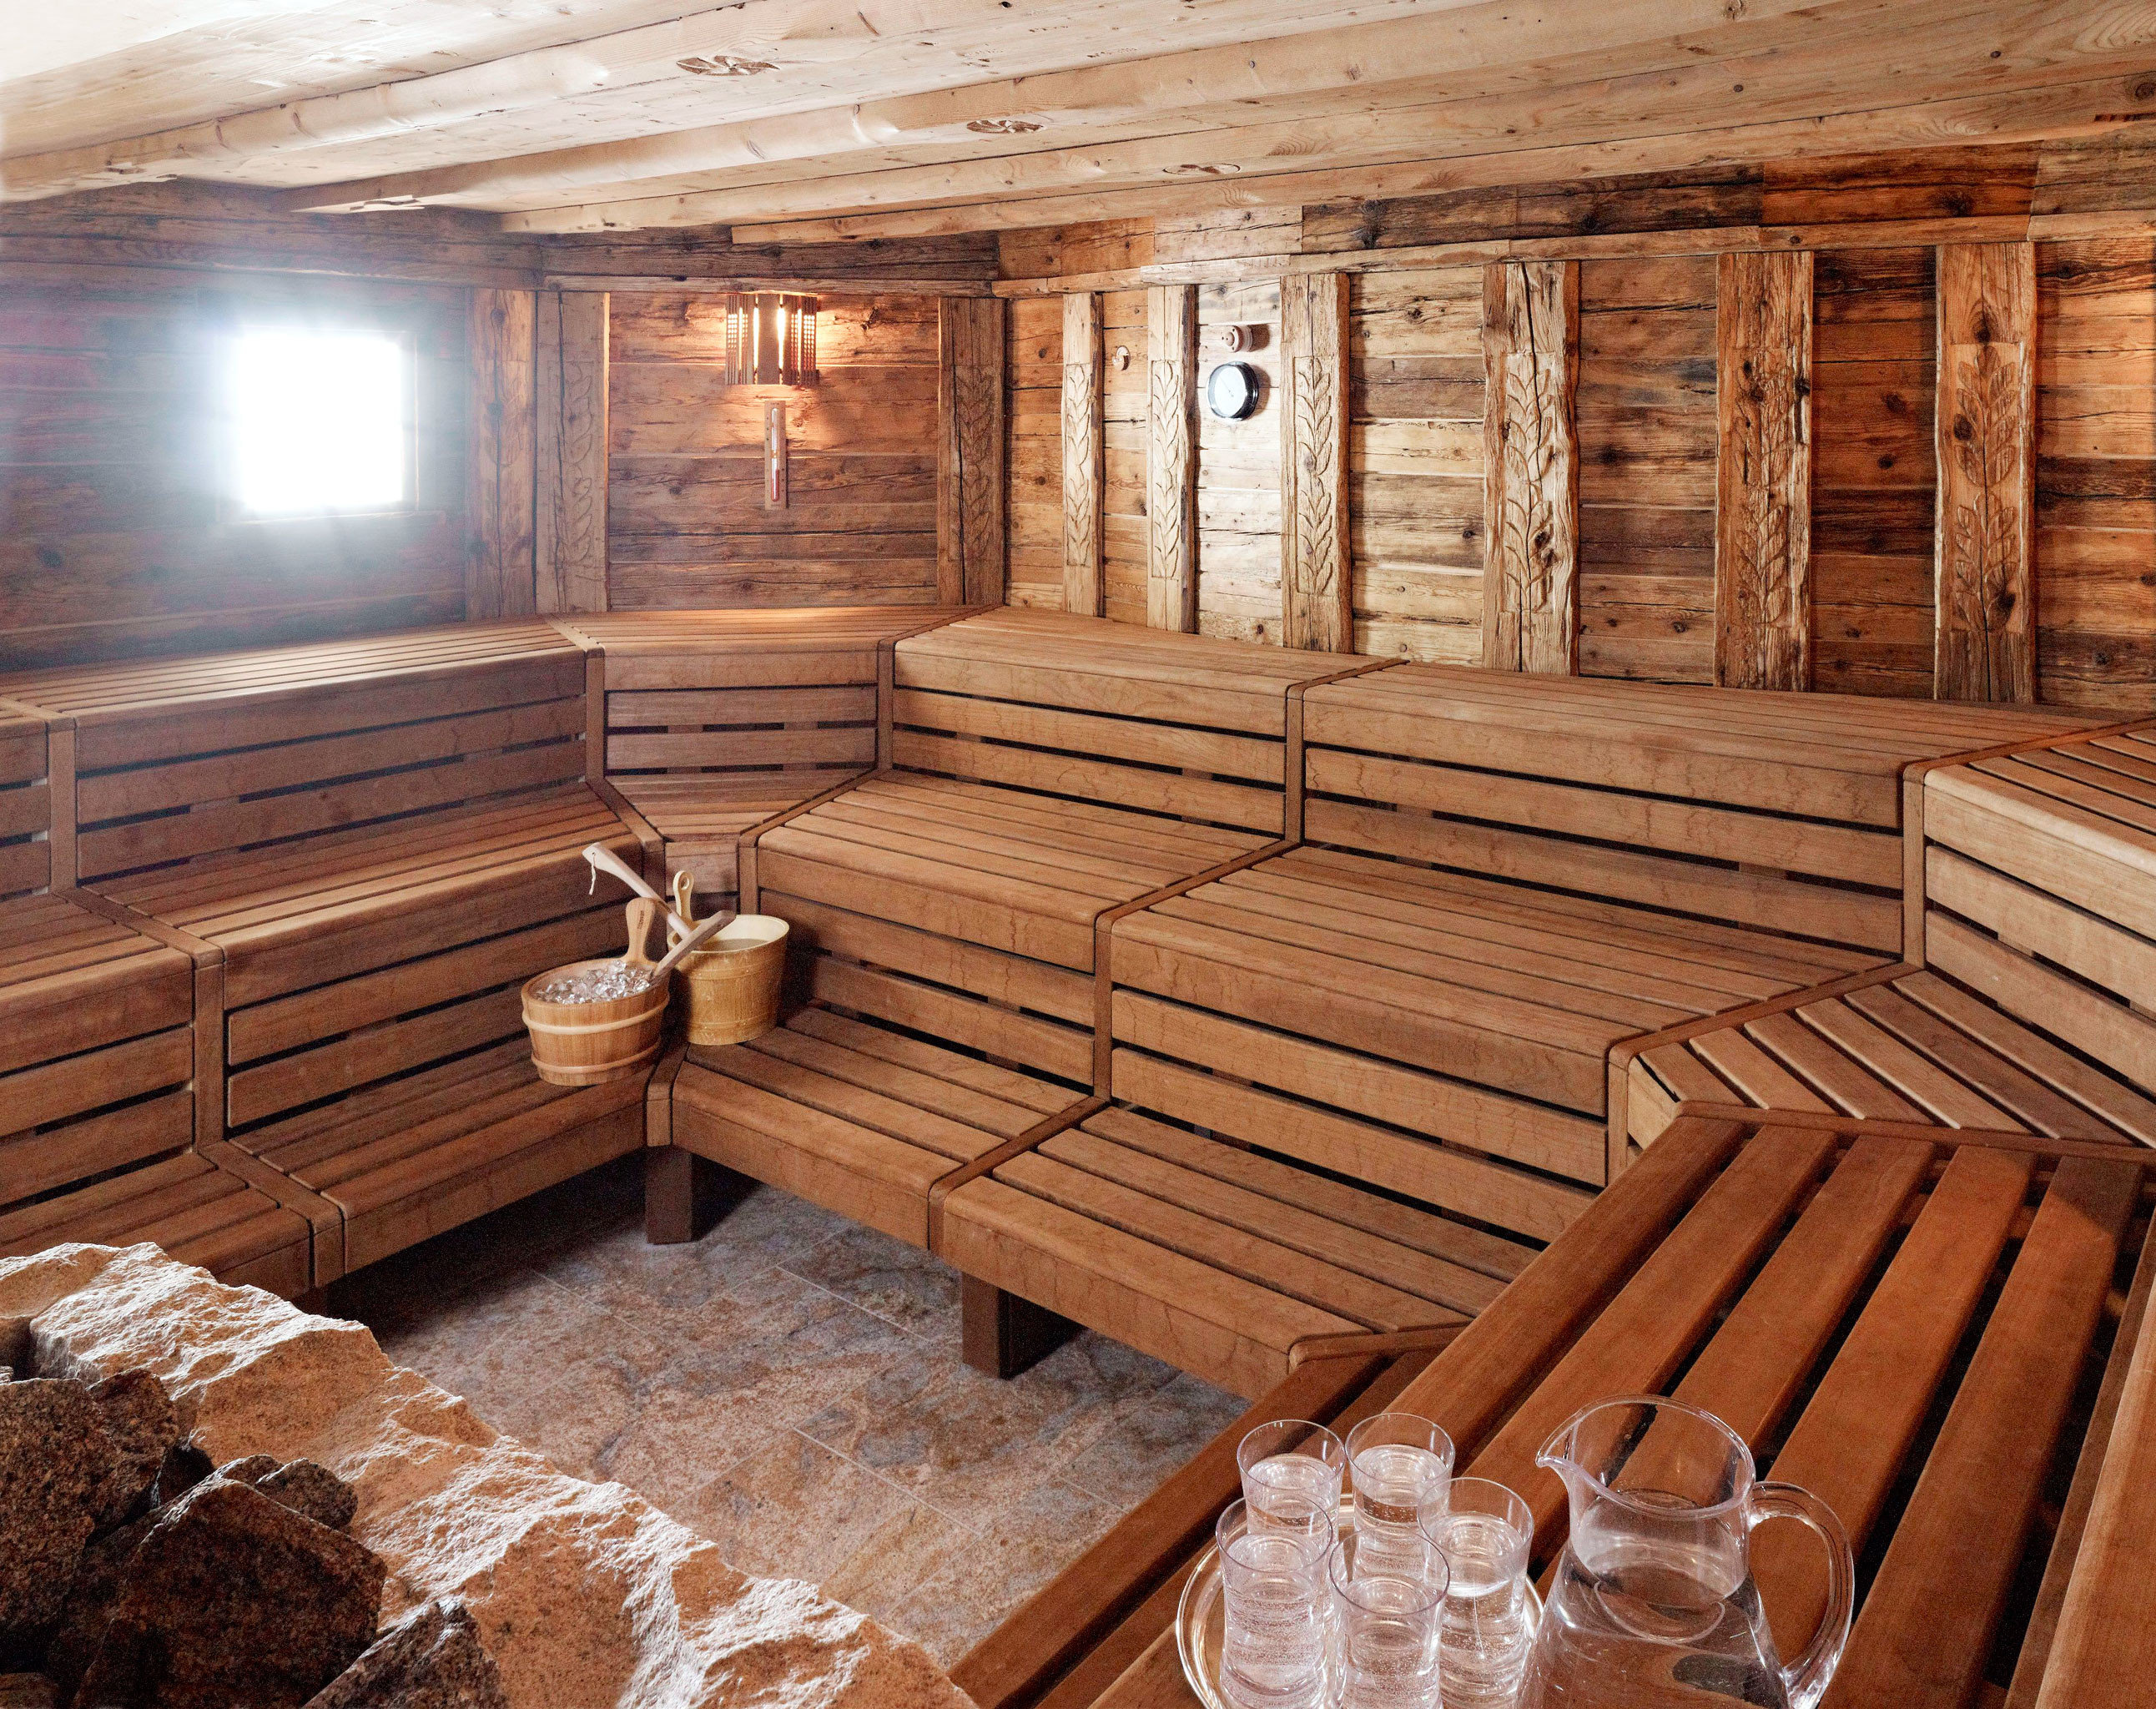 Spa Wellness wooden man made object building log cabin Fireplace swimming pool cottage sauna